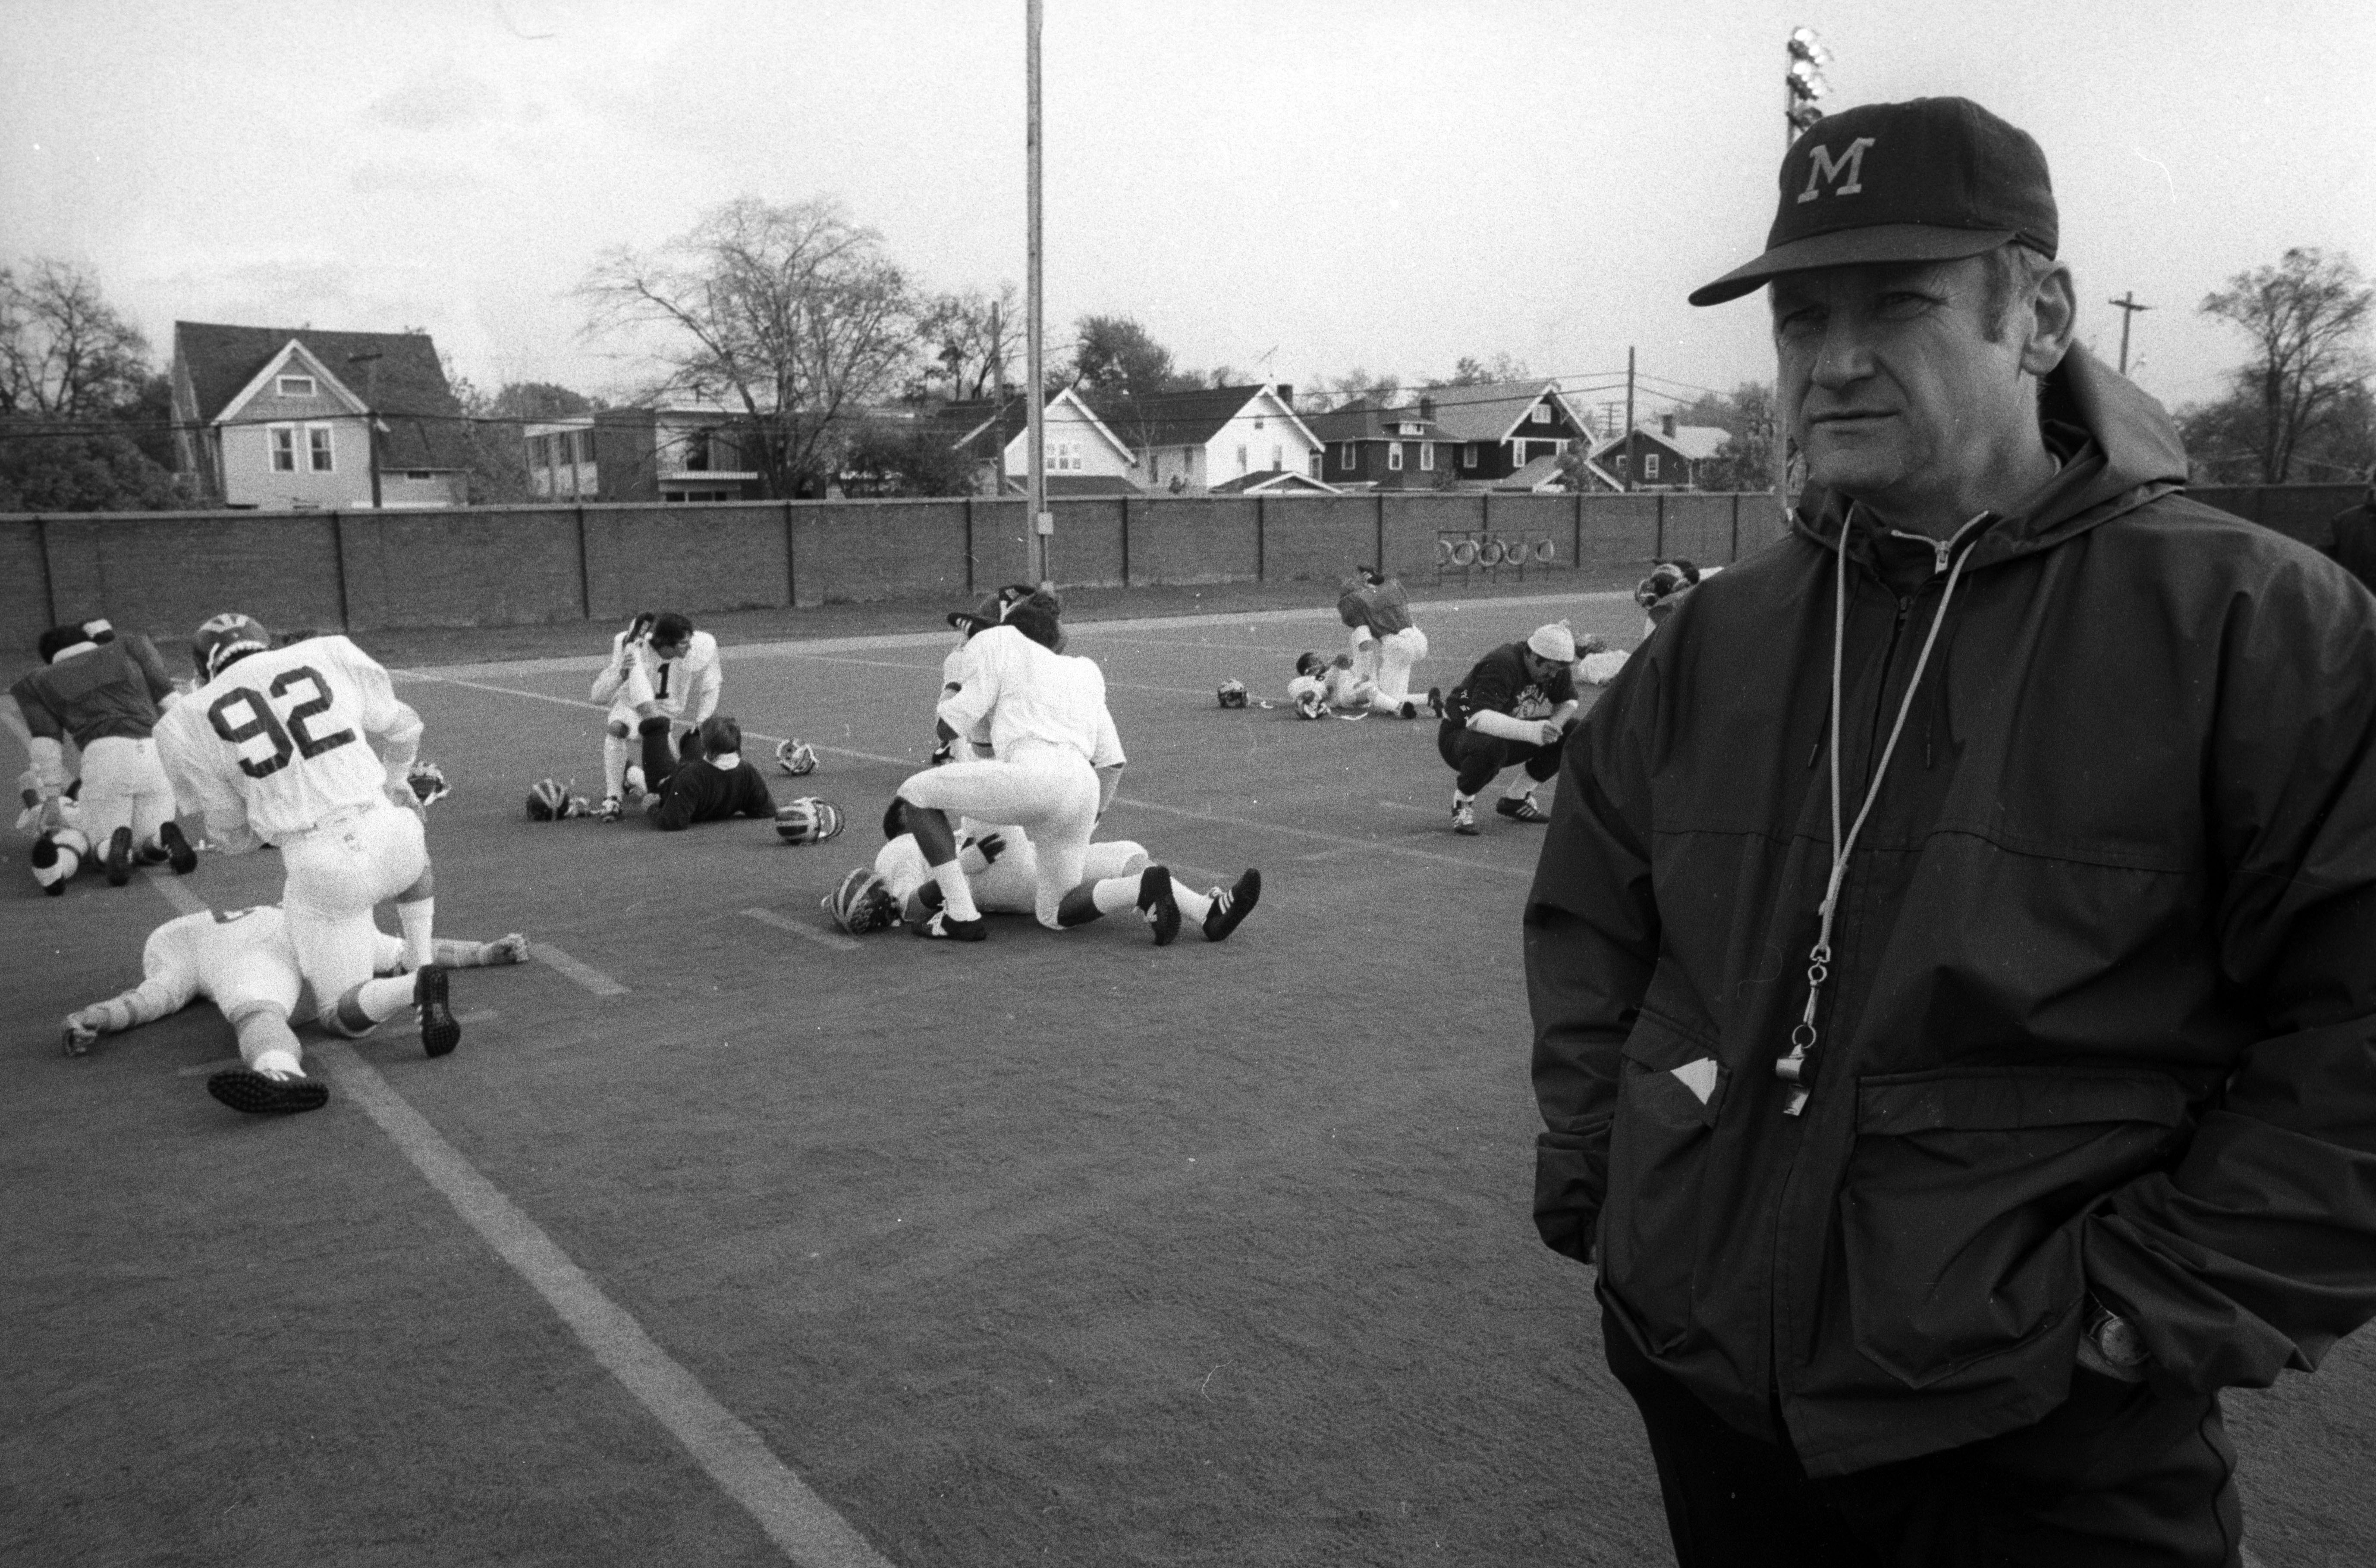 Michigan Coach Bo Schembechler At Football Practice, 1977 image